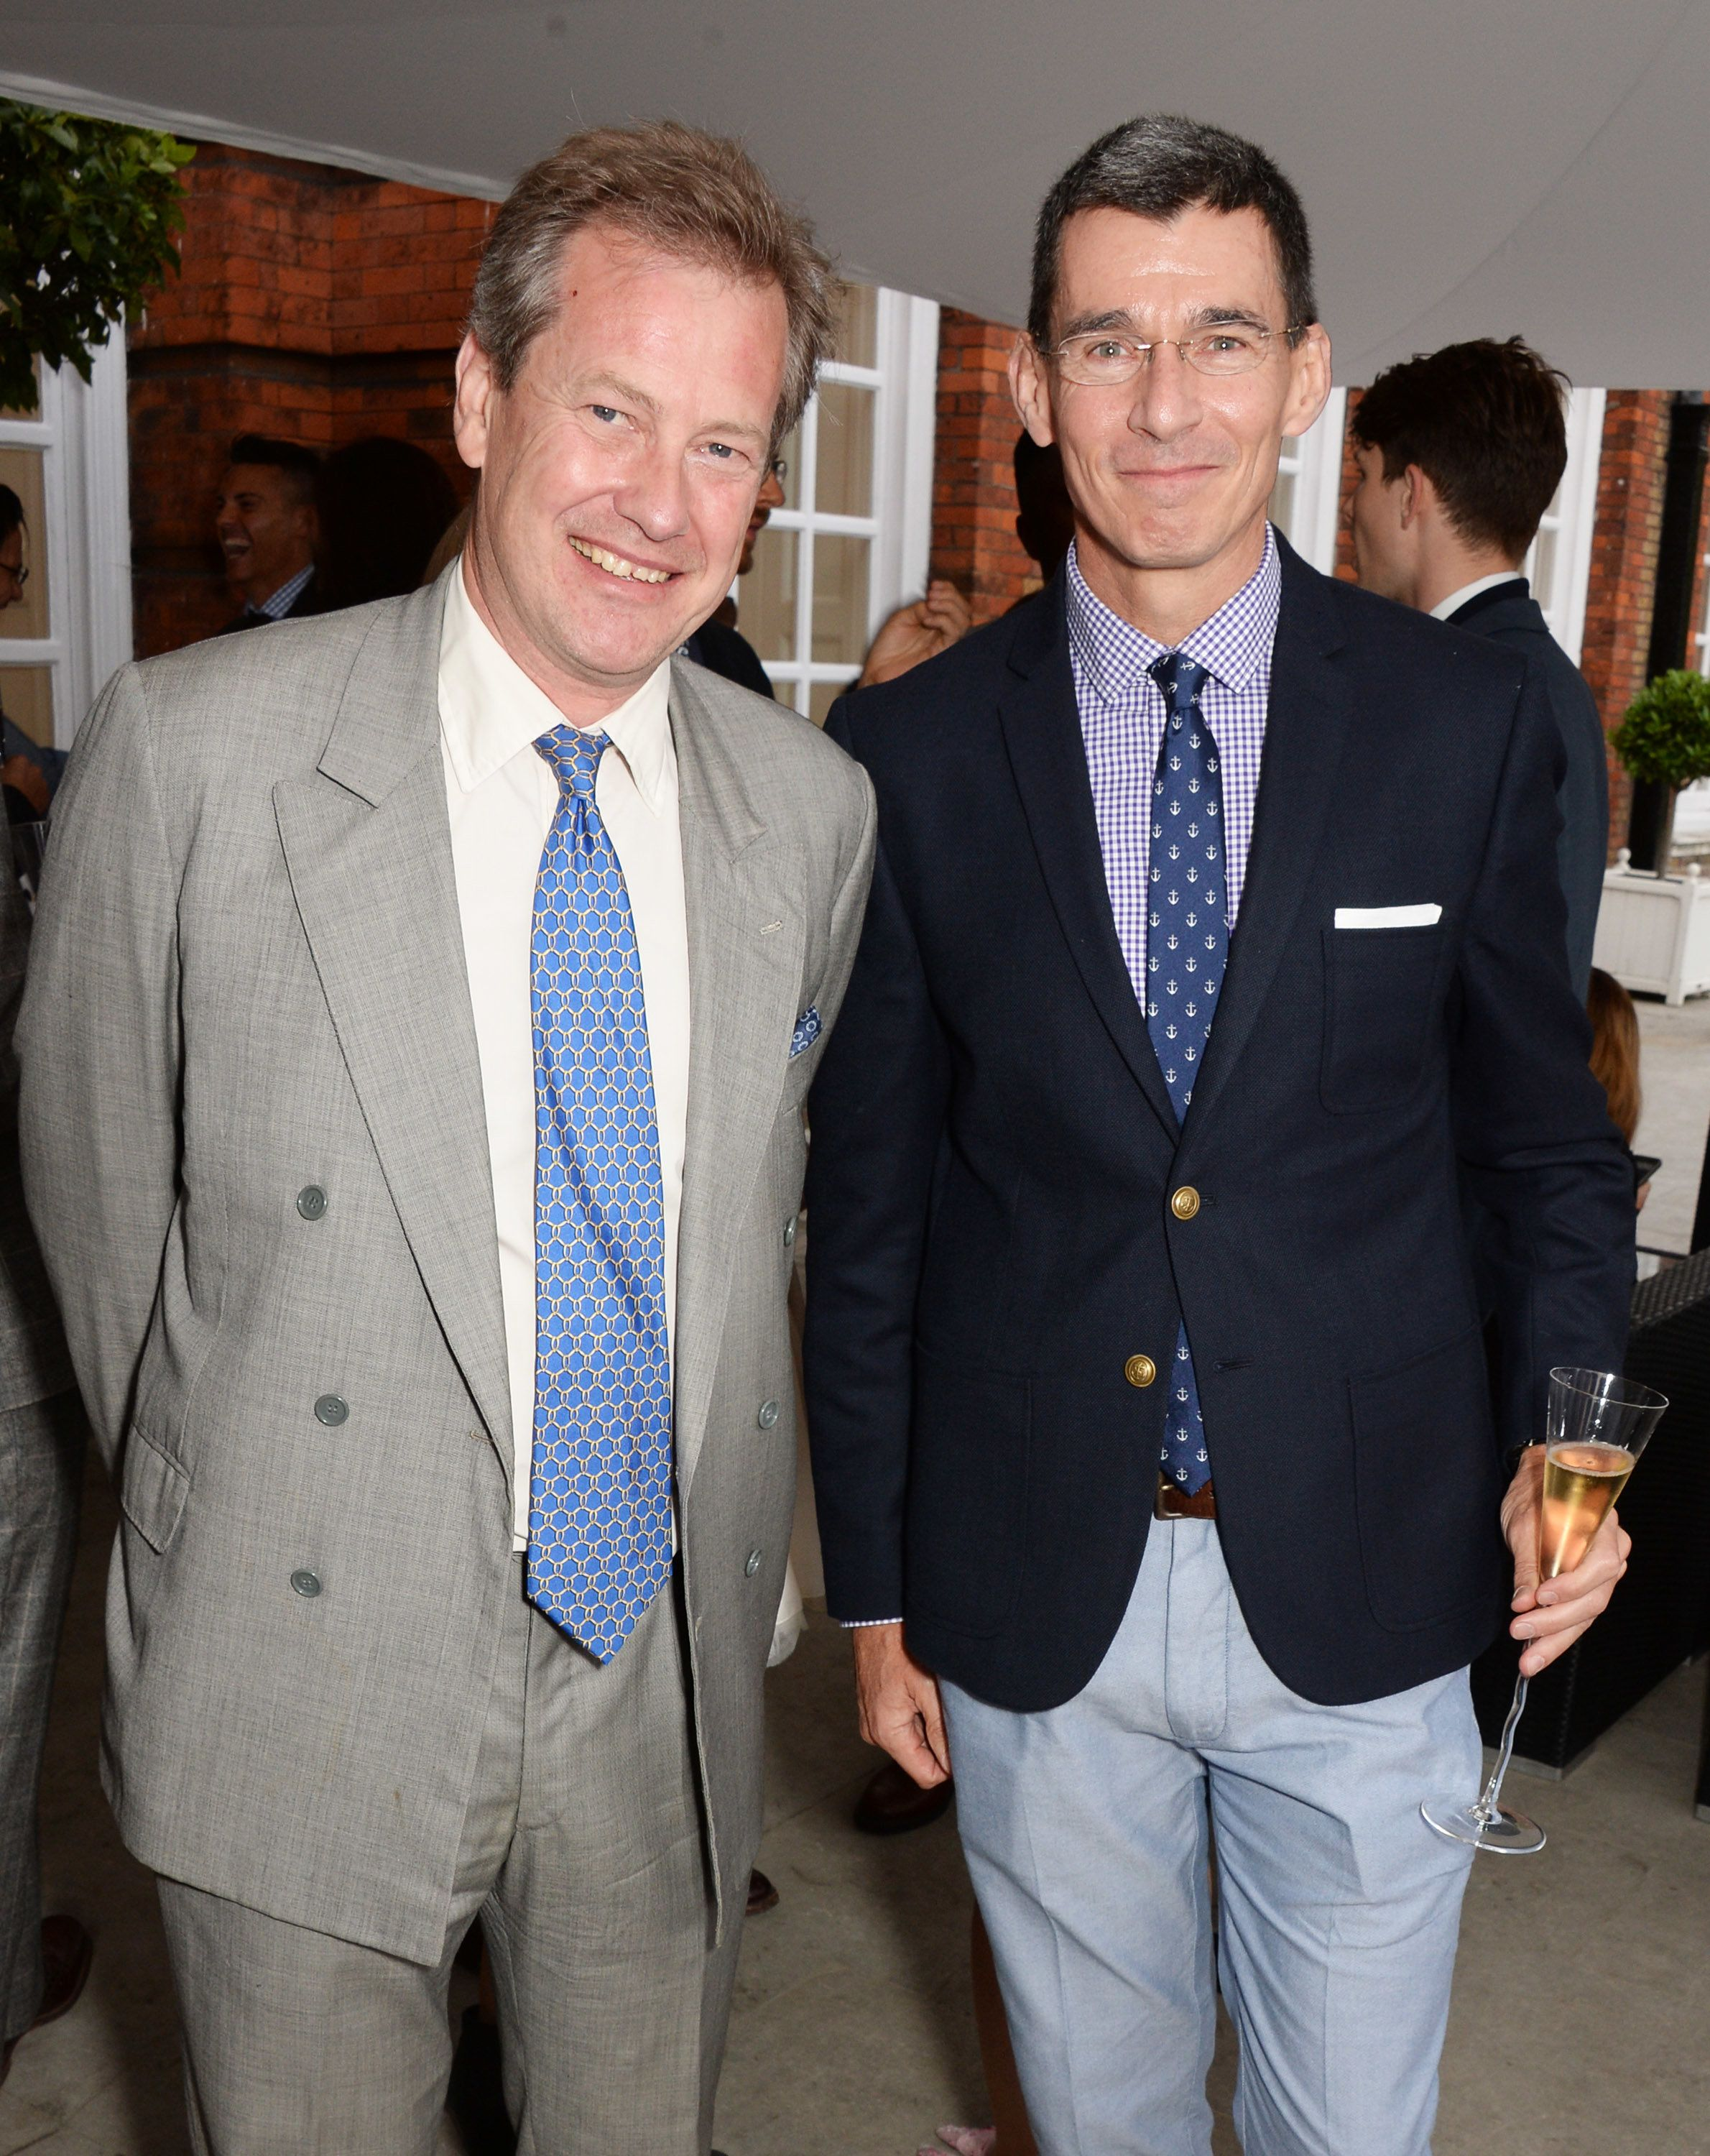 Lord Ivar Mountbatten, who is a cousin of Queen Elizabeth, has announced that he is gay and in a relationship...